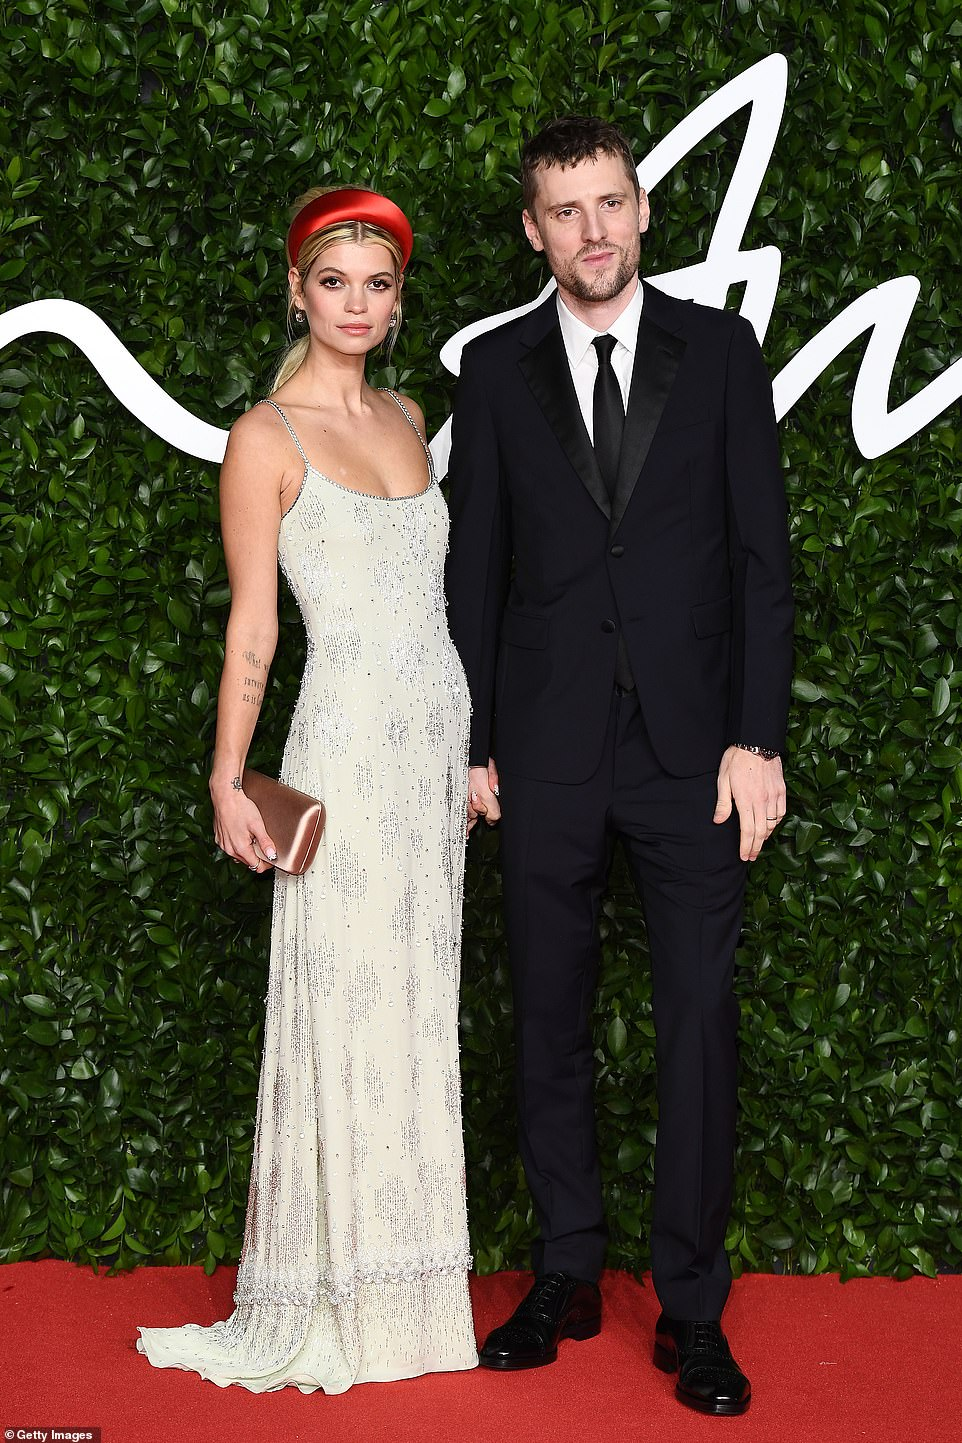 Stylish duo: Pixie Geldof and George Barnett arrived hand-in-hand for the style soiree